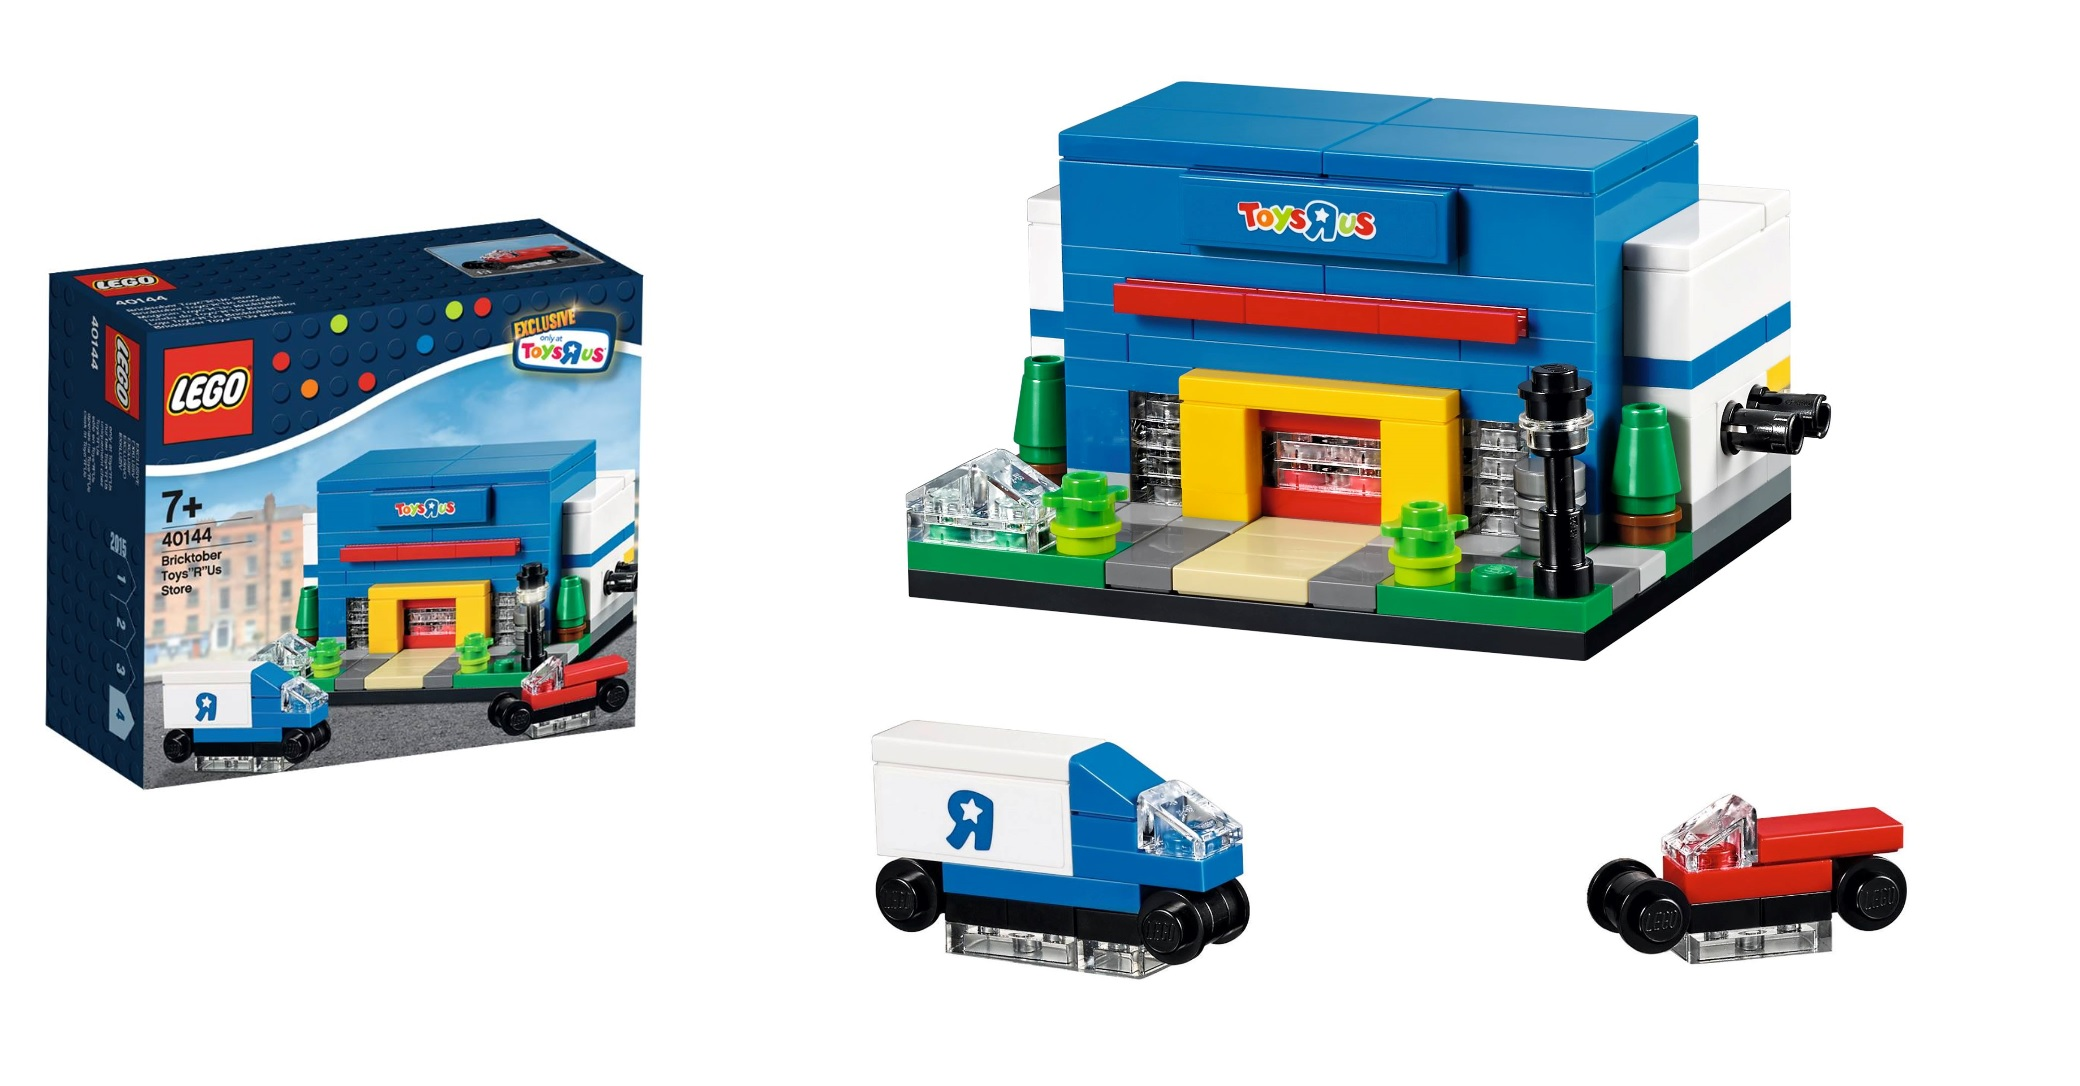 Lego Sets At Toys R Us : Toys n bricks lego news site sales deals reviews